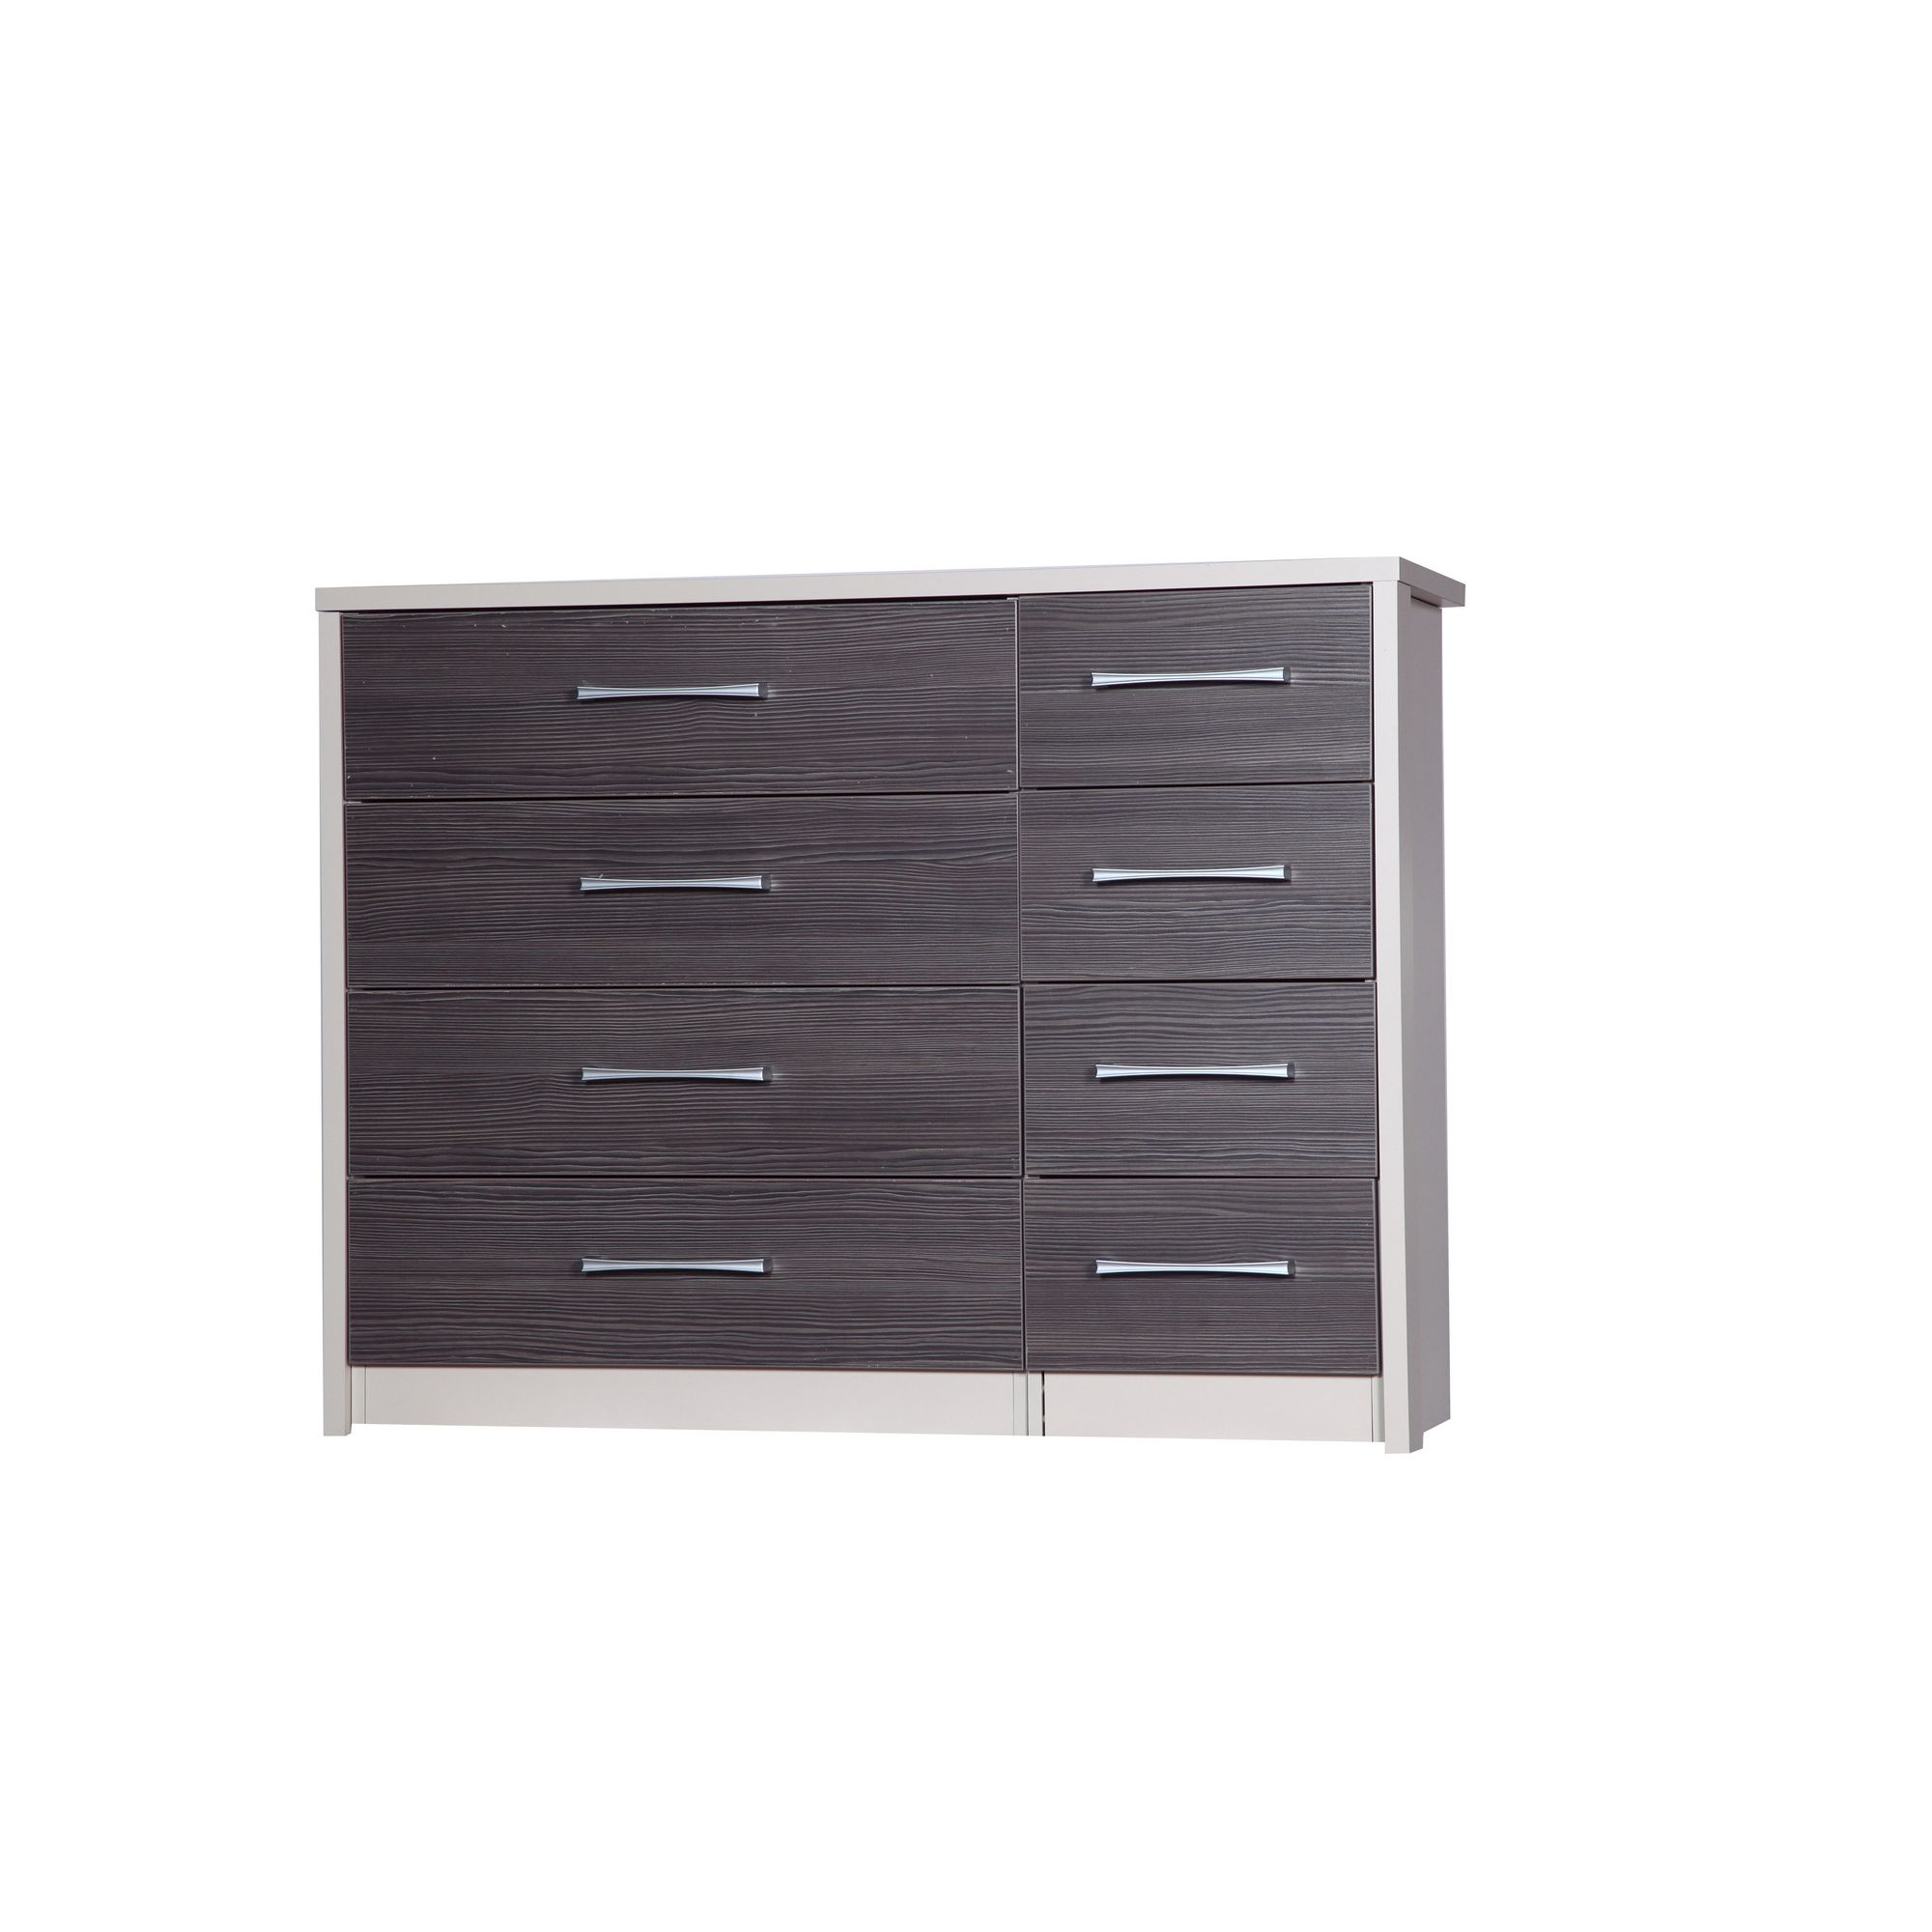 Alto Furniture Avola 8 Drawer Double Chest - Cream Carcass With Grey Avola at Tesco Direct